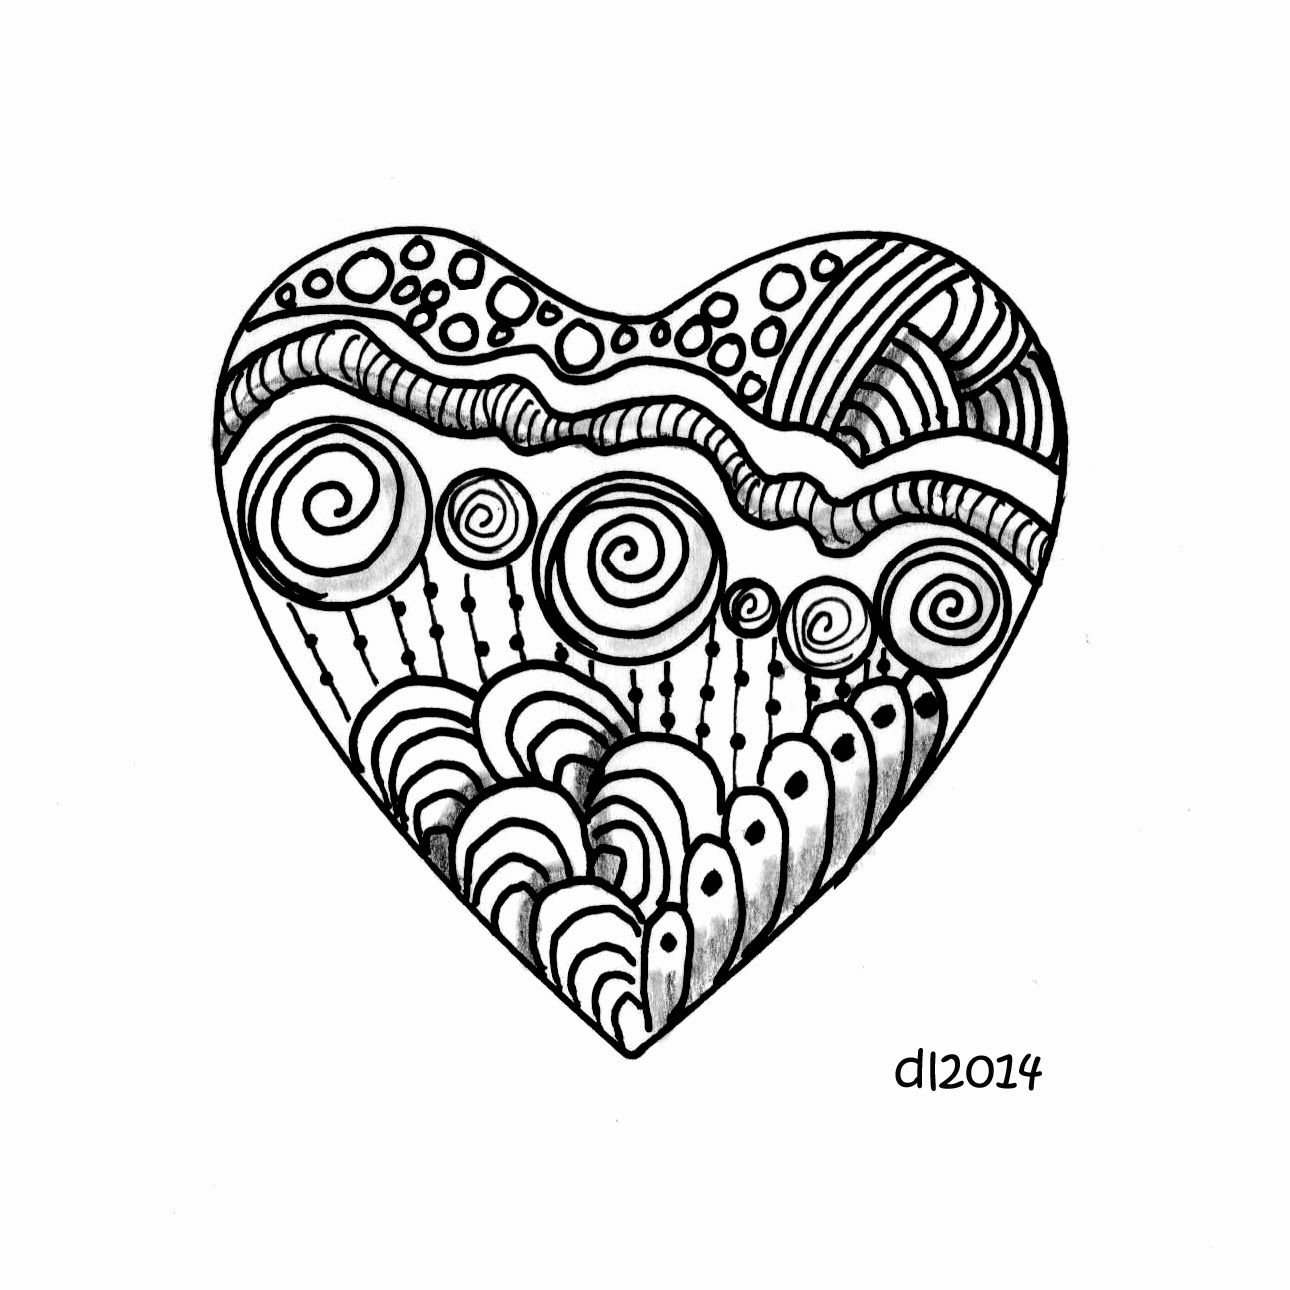 heart zentangle coloring pages - photo#22